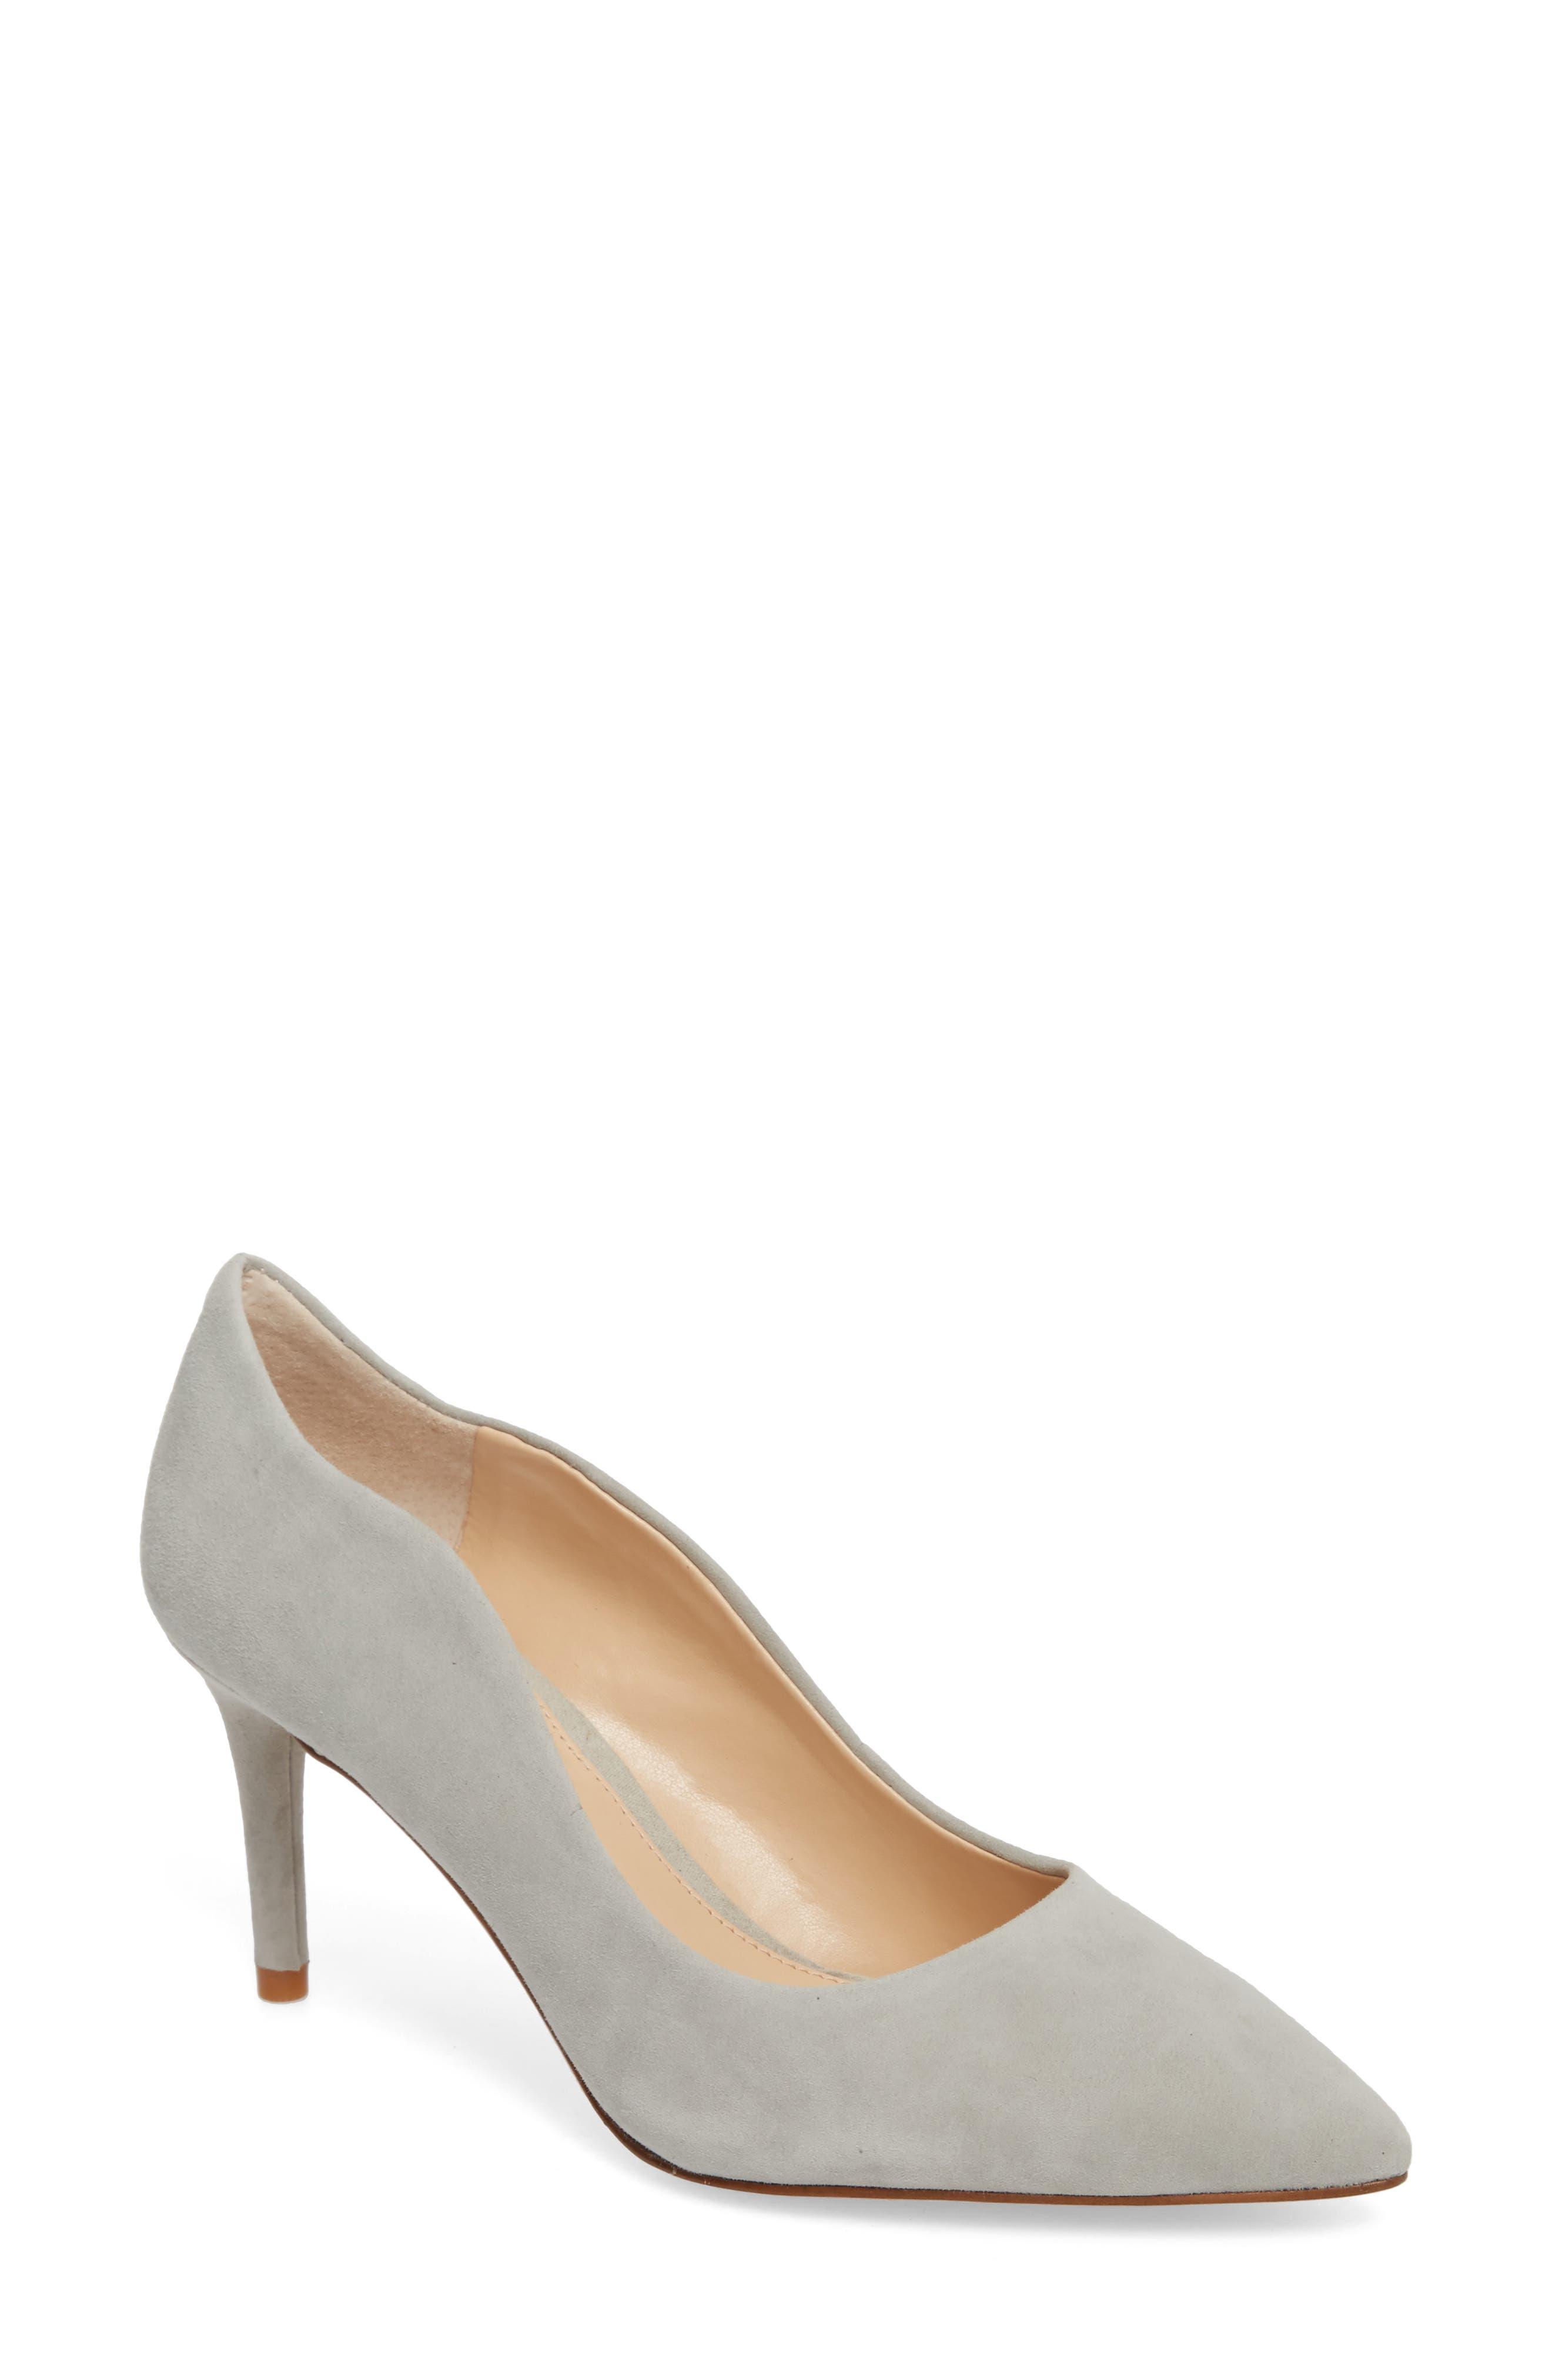 Alternate Image 1 Selected - Vince Camuto Jaynita Pointy Toe Pump (Women)